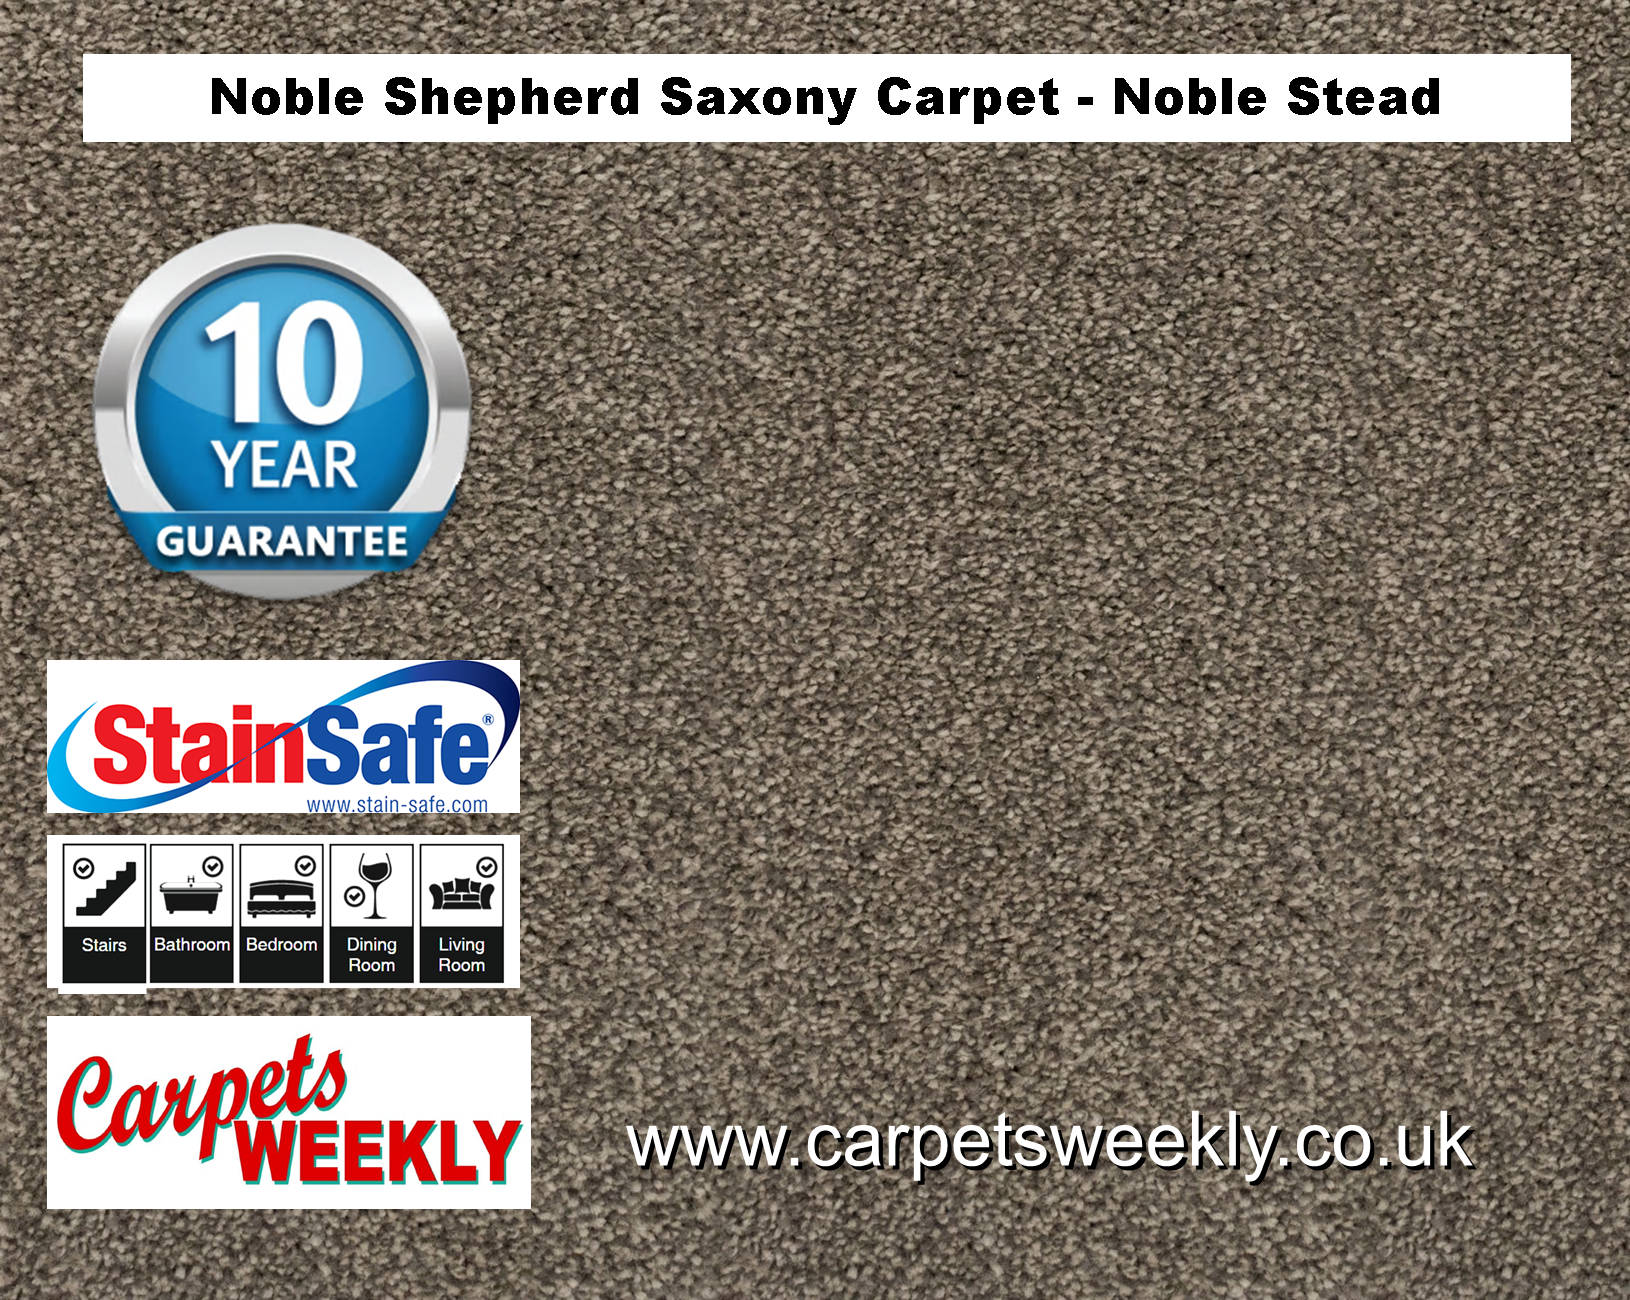 Noble Shepherd Saxony Carpet from Carpets Weekly Noble Stead (865)